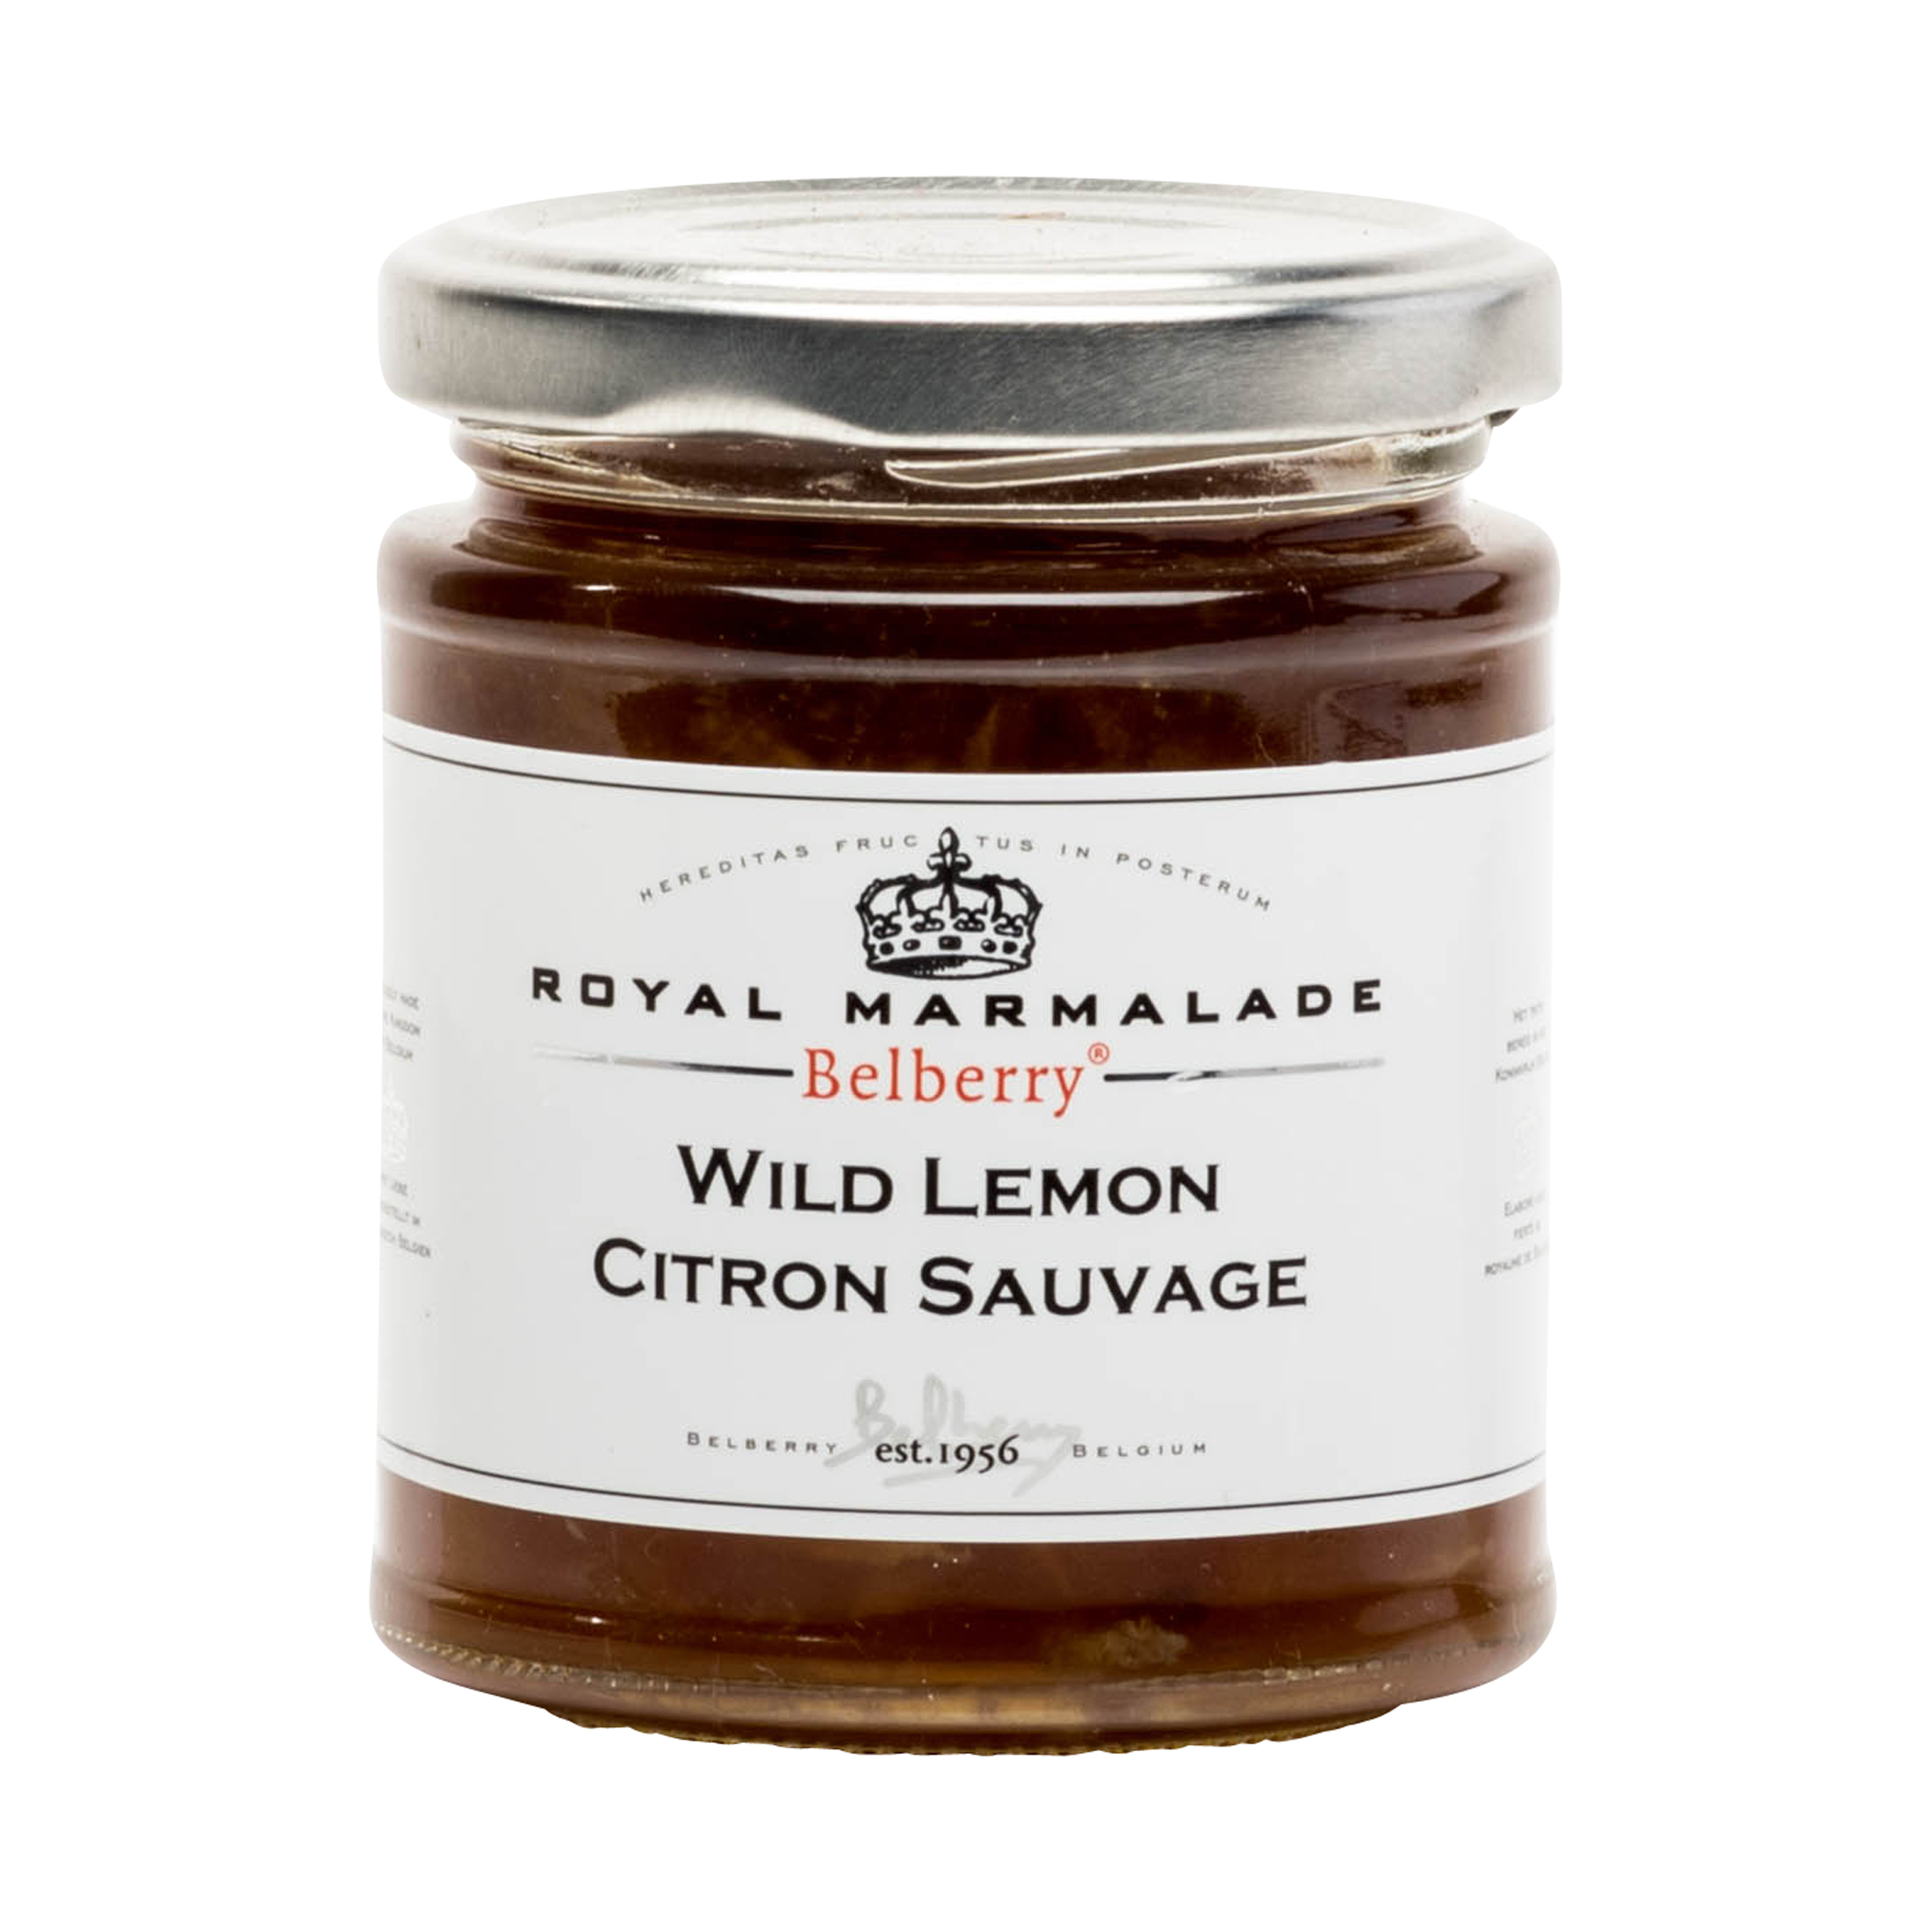 WILD LEMON ROYAL MARMALADE